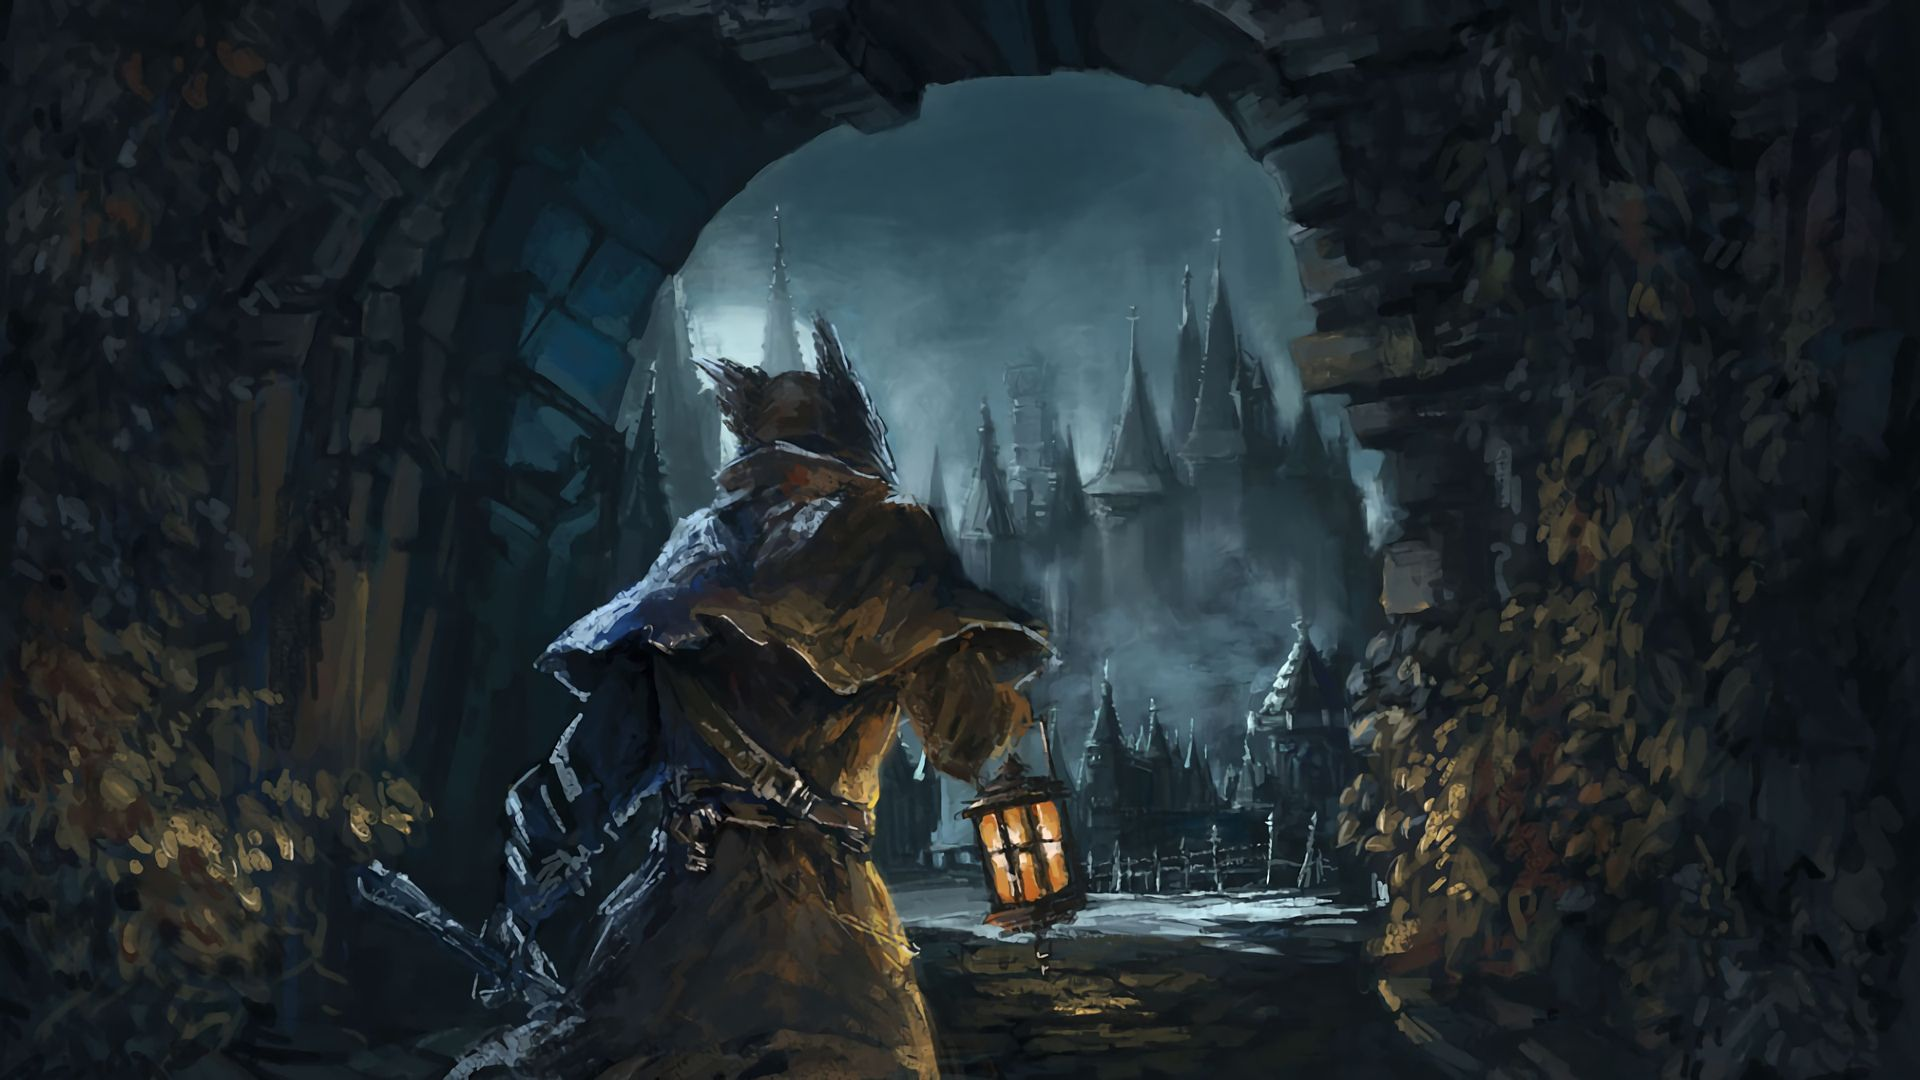 Video Game Bloodborne Wallpaper Bloodborne Bloodborne Art Digital Wallpaper